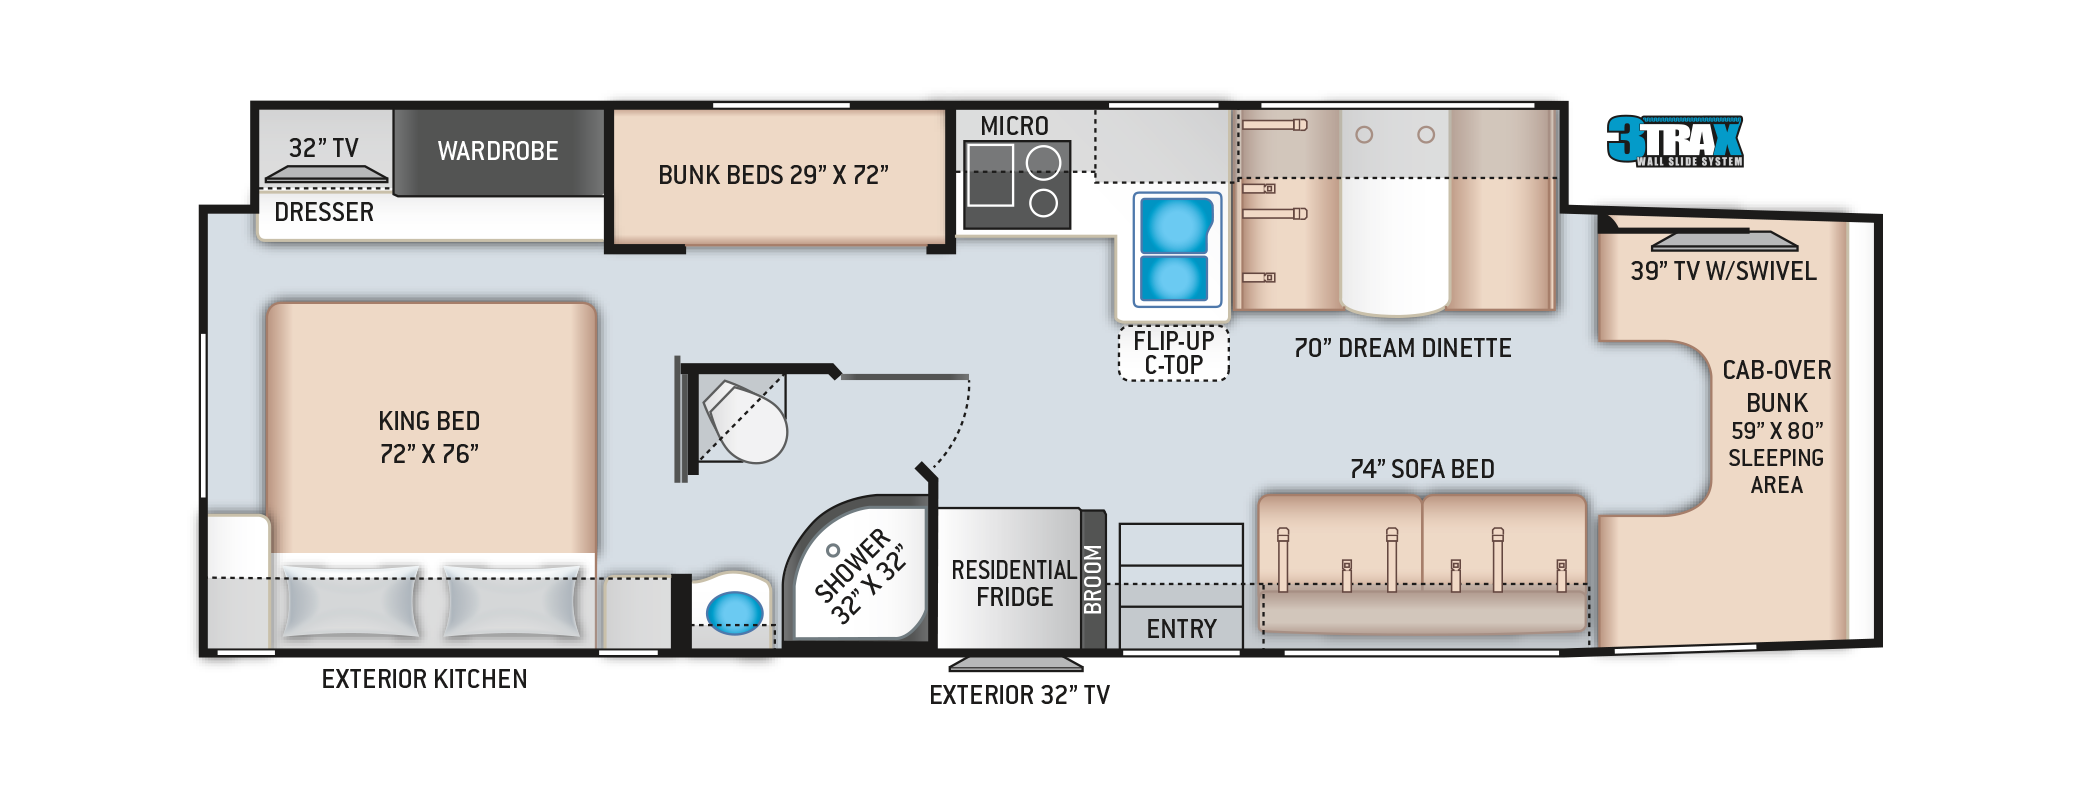 Omni Super C RV Floor Plan BB35